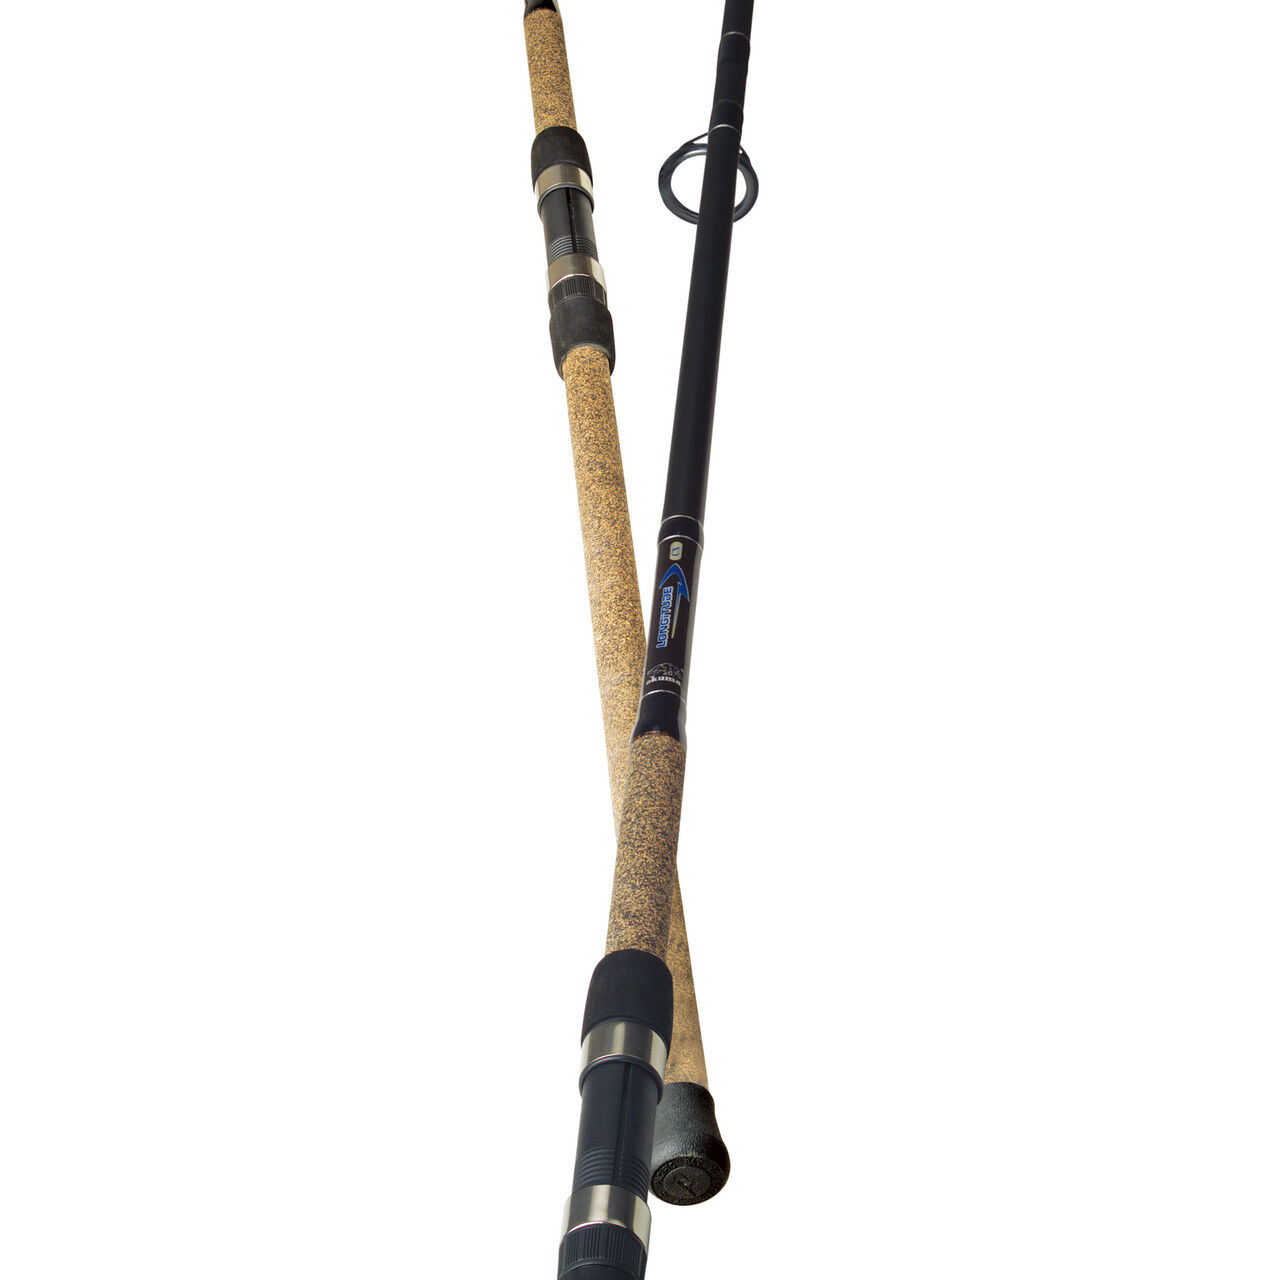 Okuma Spinning Longitude Surf  Rod 11' 0  LC-S-1102H-1  come to choose your own sports style